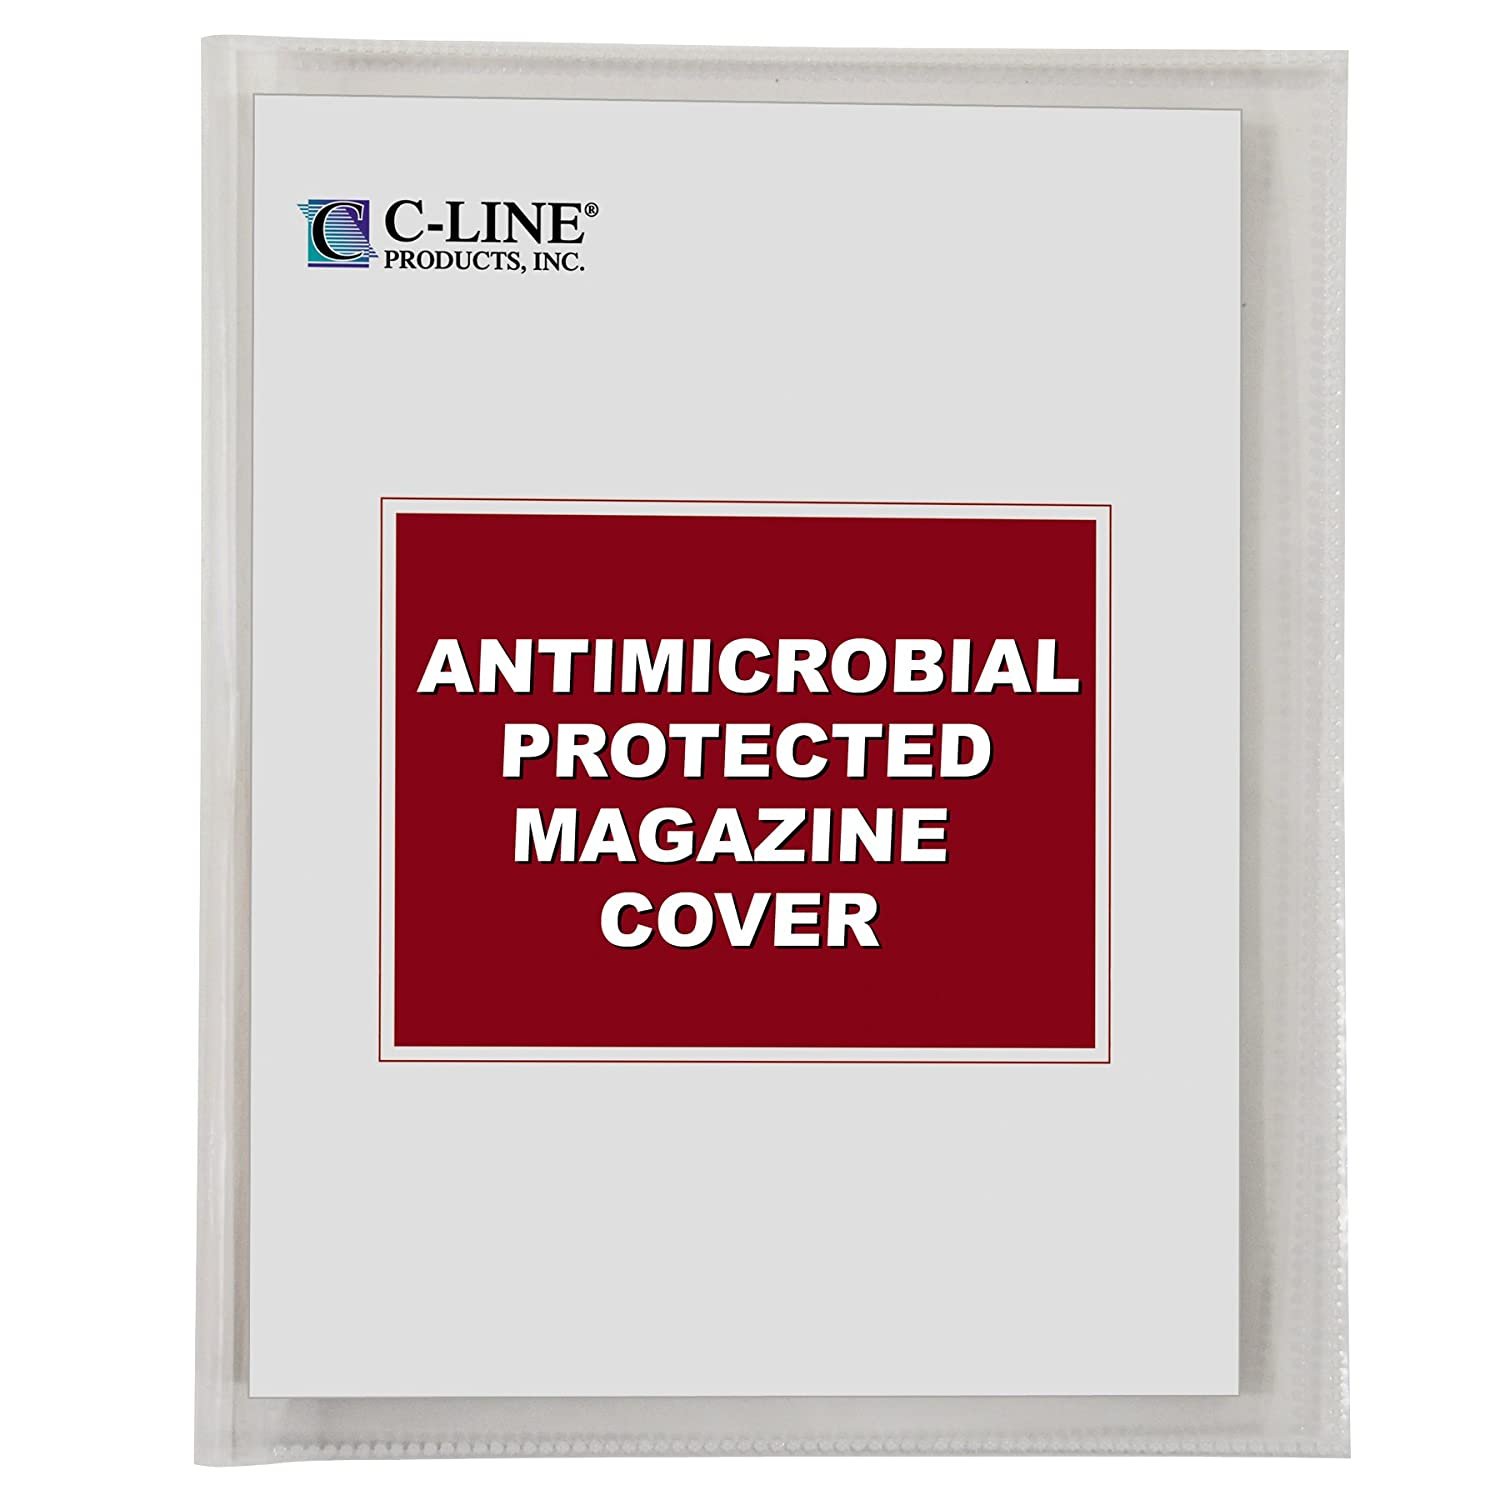 C-Line 56147 Polypropylene Antimicrobial Magazine Cover, 25 Covers Per Box C-Line Products Inc.